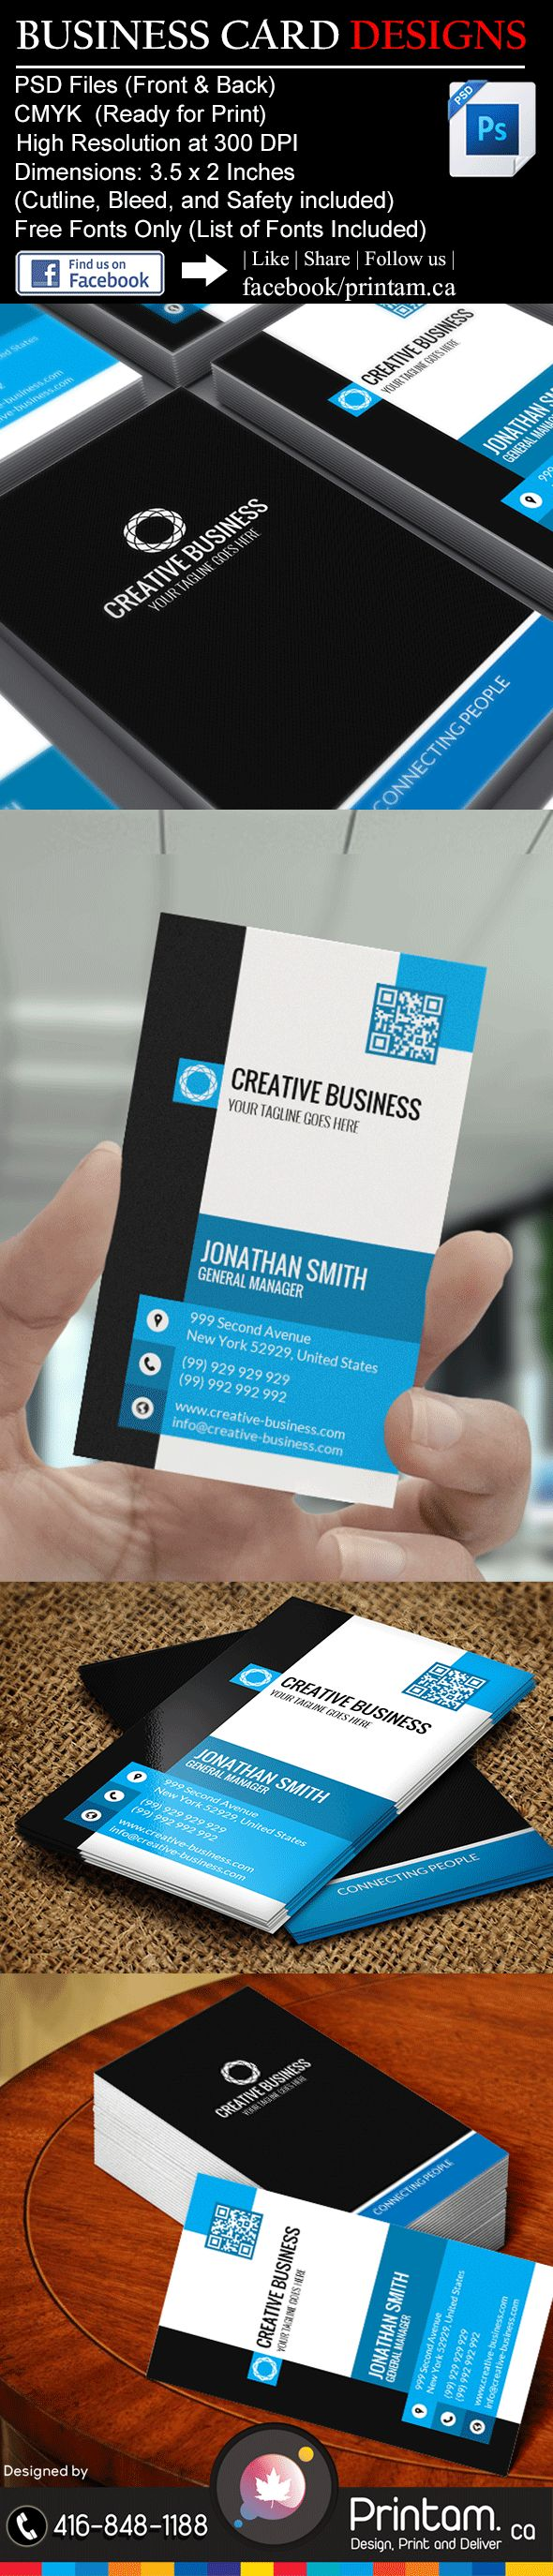 10 best Business IT - Business Card Designs images on Pinterest ...